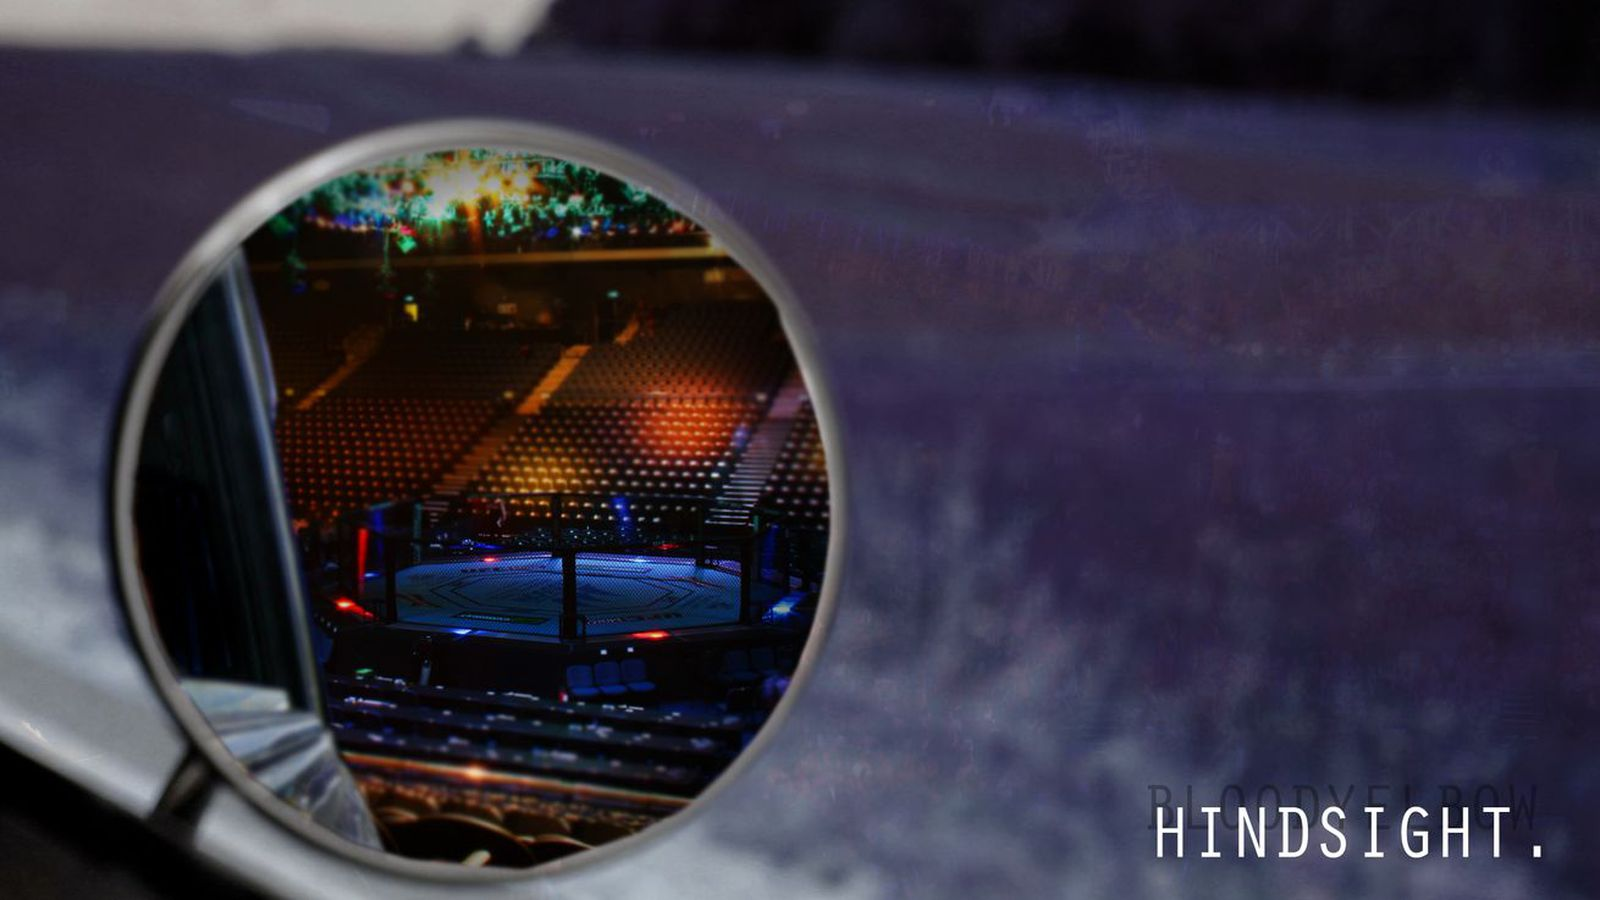 Hindsight - UFC Albany: Lewis vs. Abdurakhimov in retrospect - Bloody Elbow